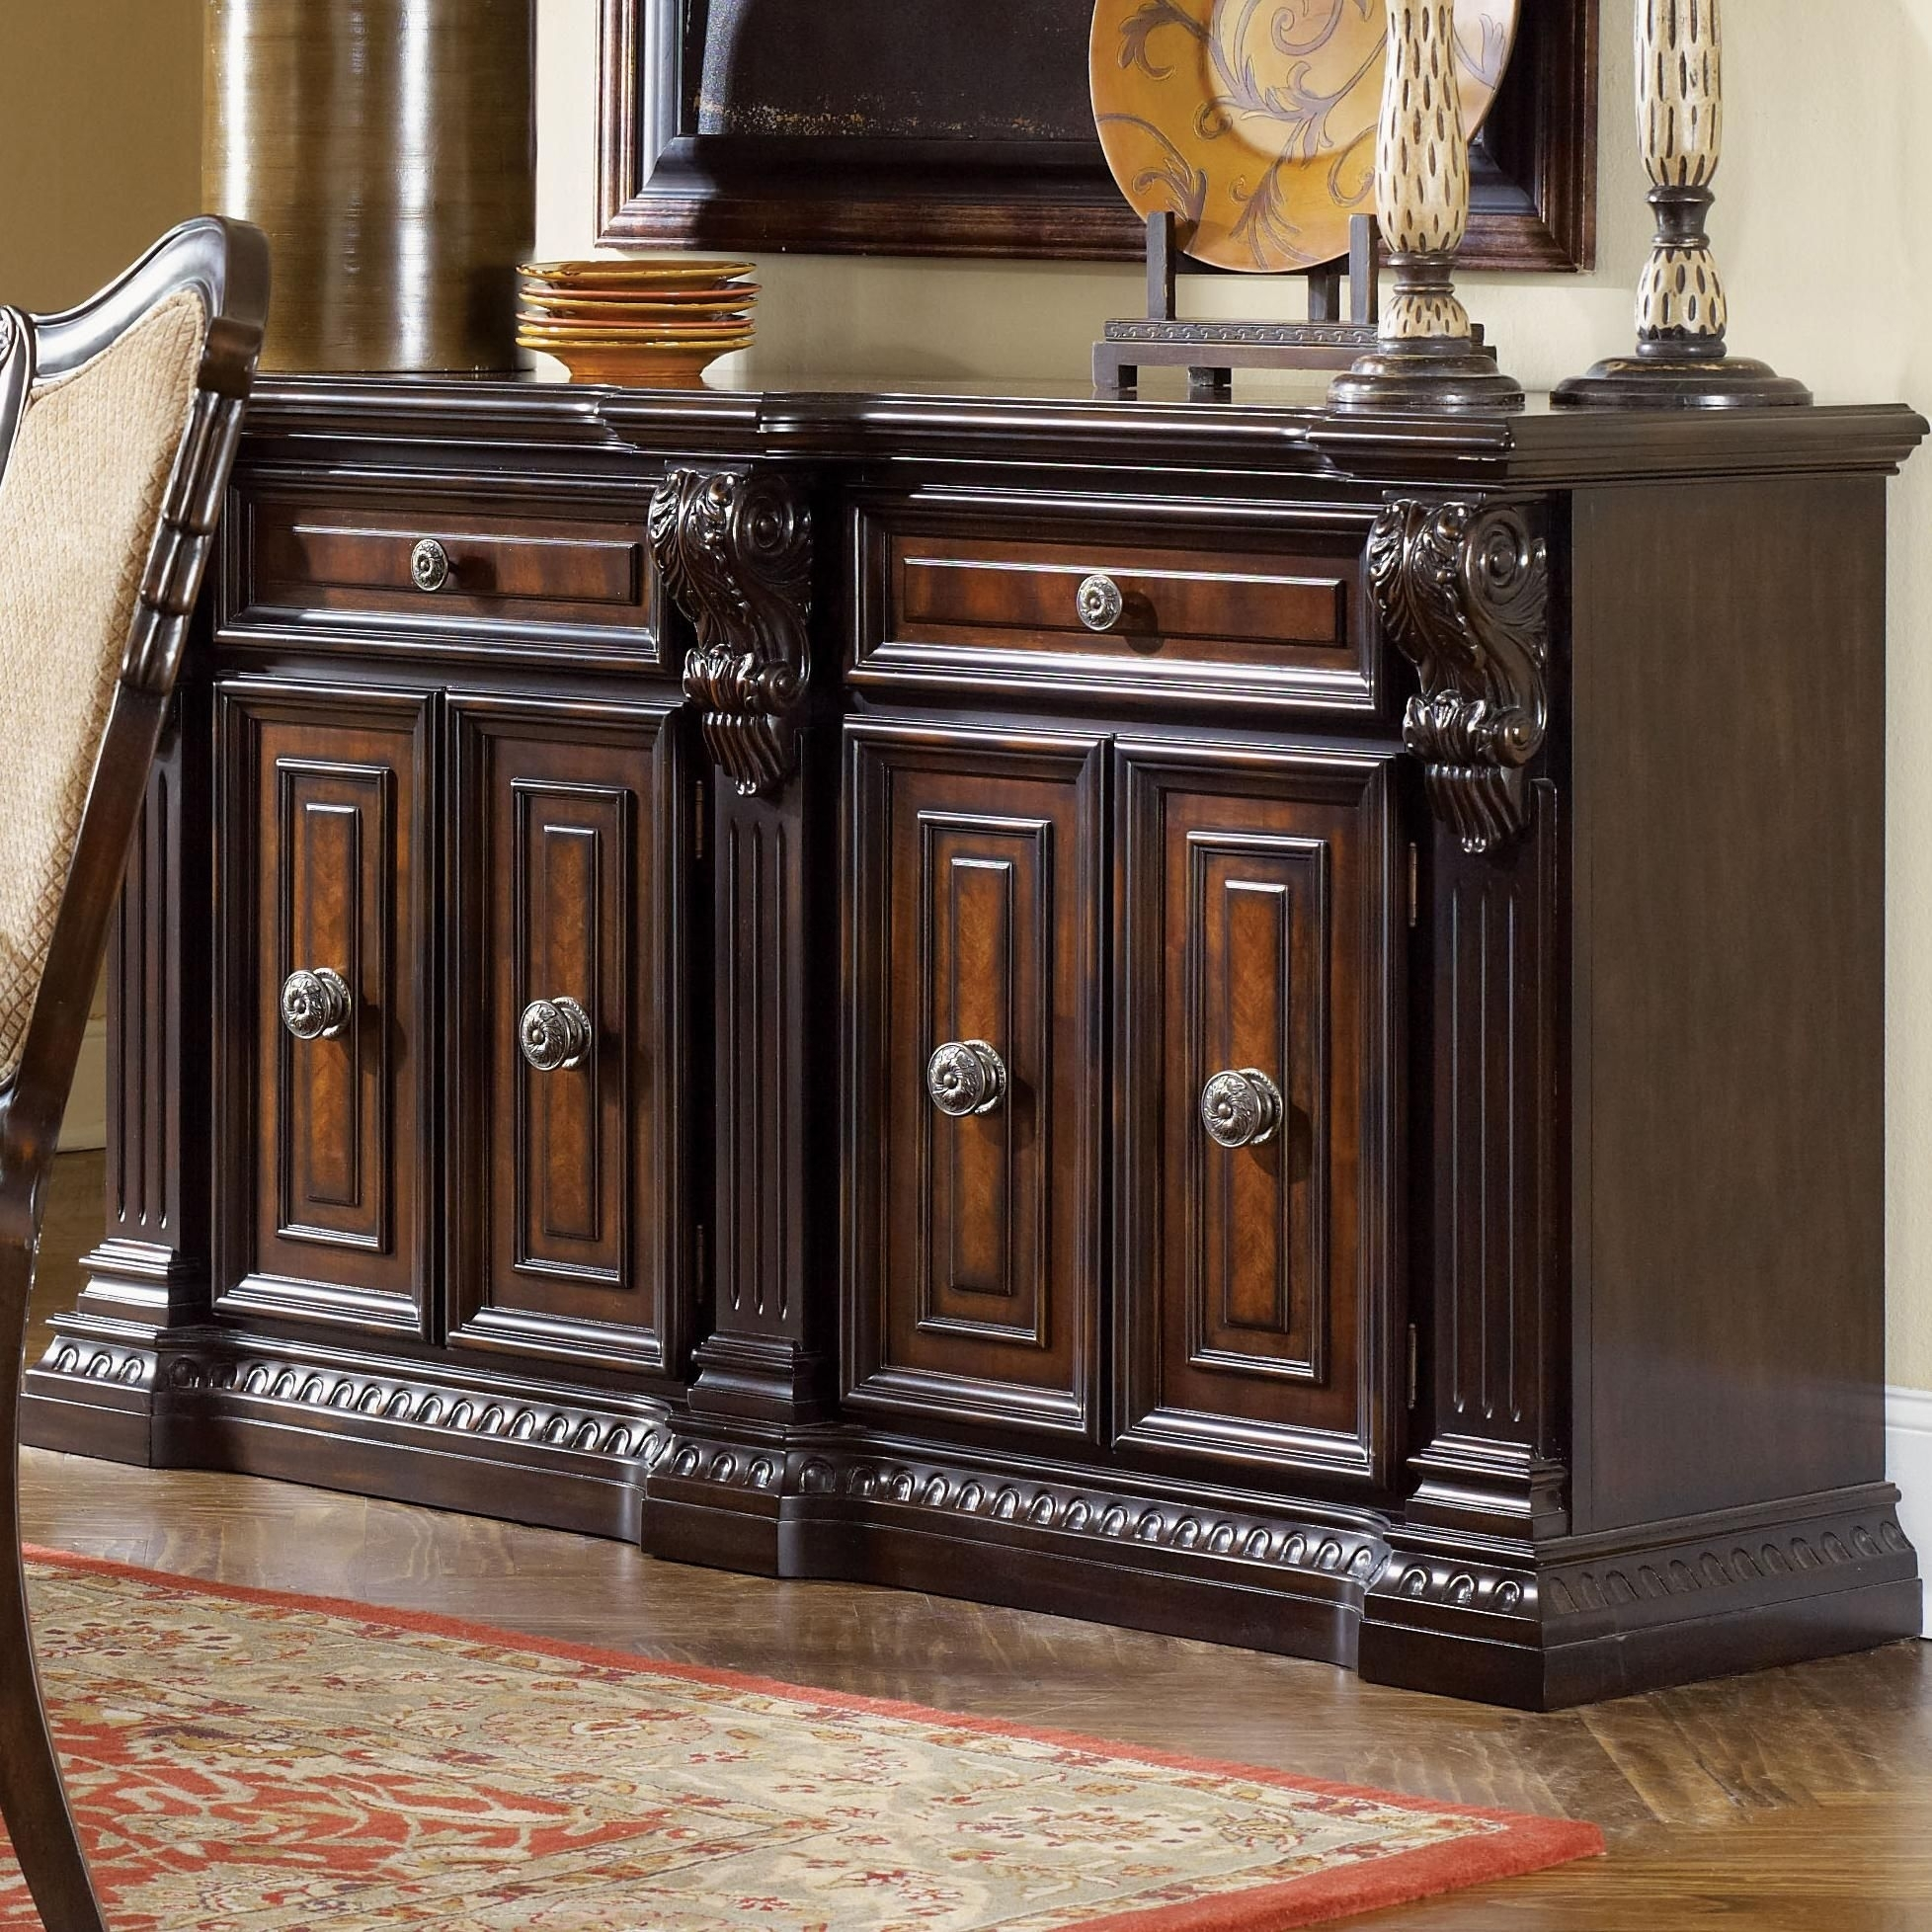 Grand Estates Sideboard Table W/ 2 Drawersfairmont Designs | For throughout 2-Door/2-Drawer Cast Jali Sideboards (Image 11 of 30)